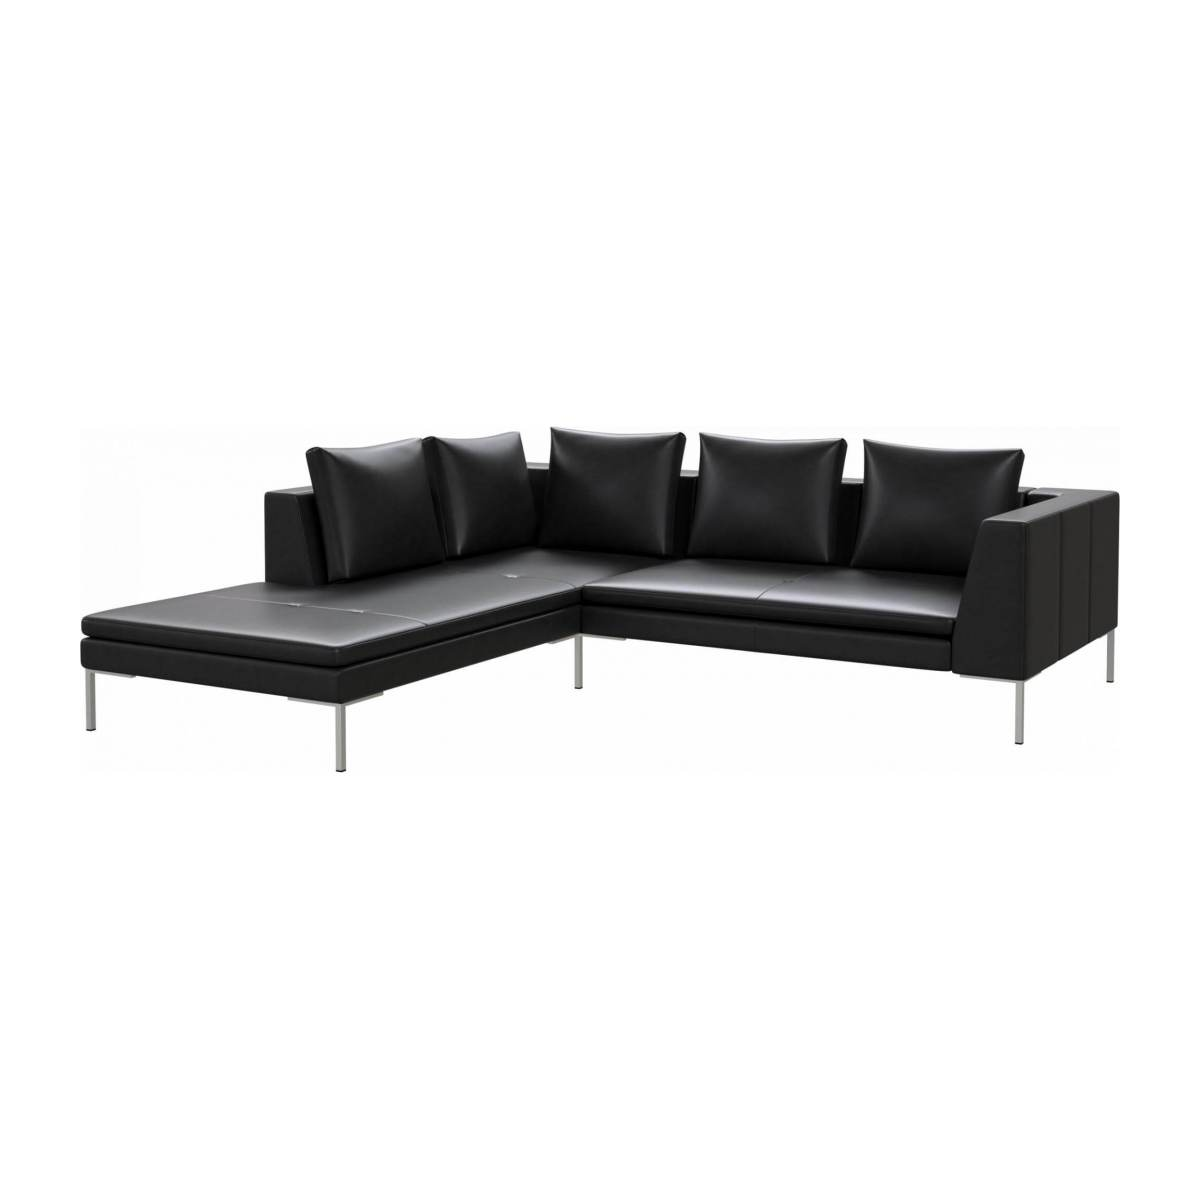 2 seater sofa with chaise longue on the left in Savoy semi-aniline leather, platin black  n°2